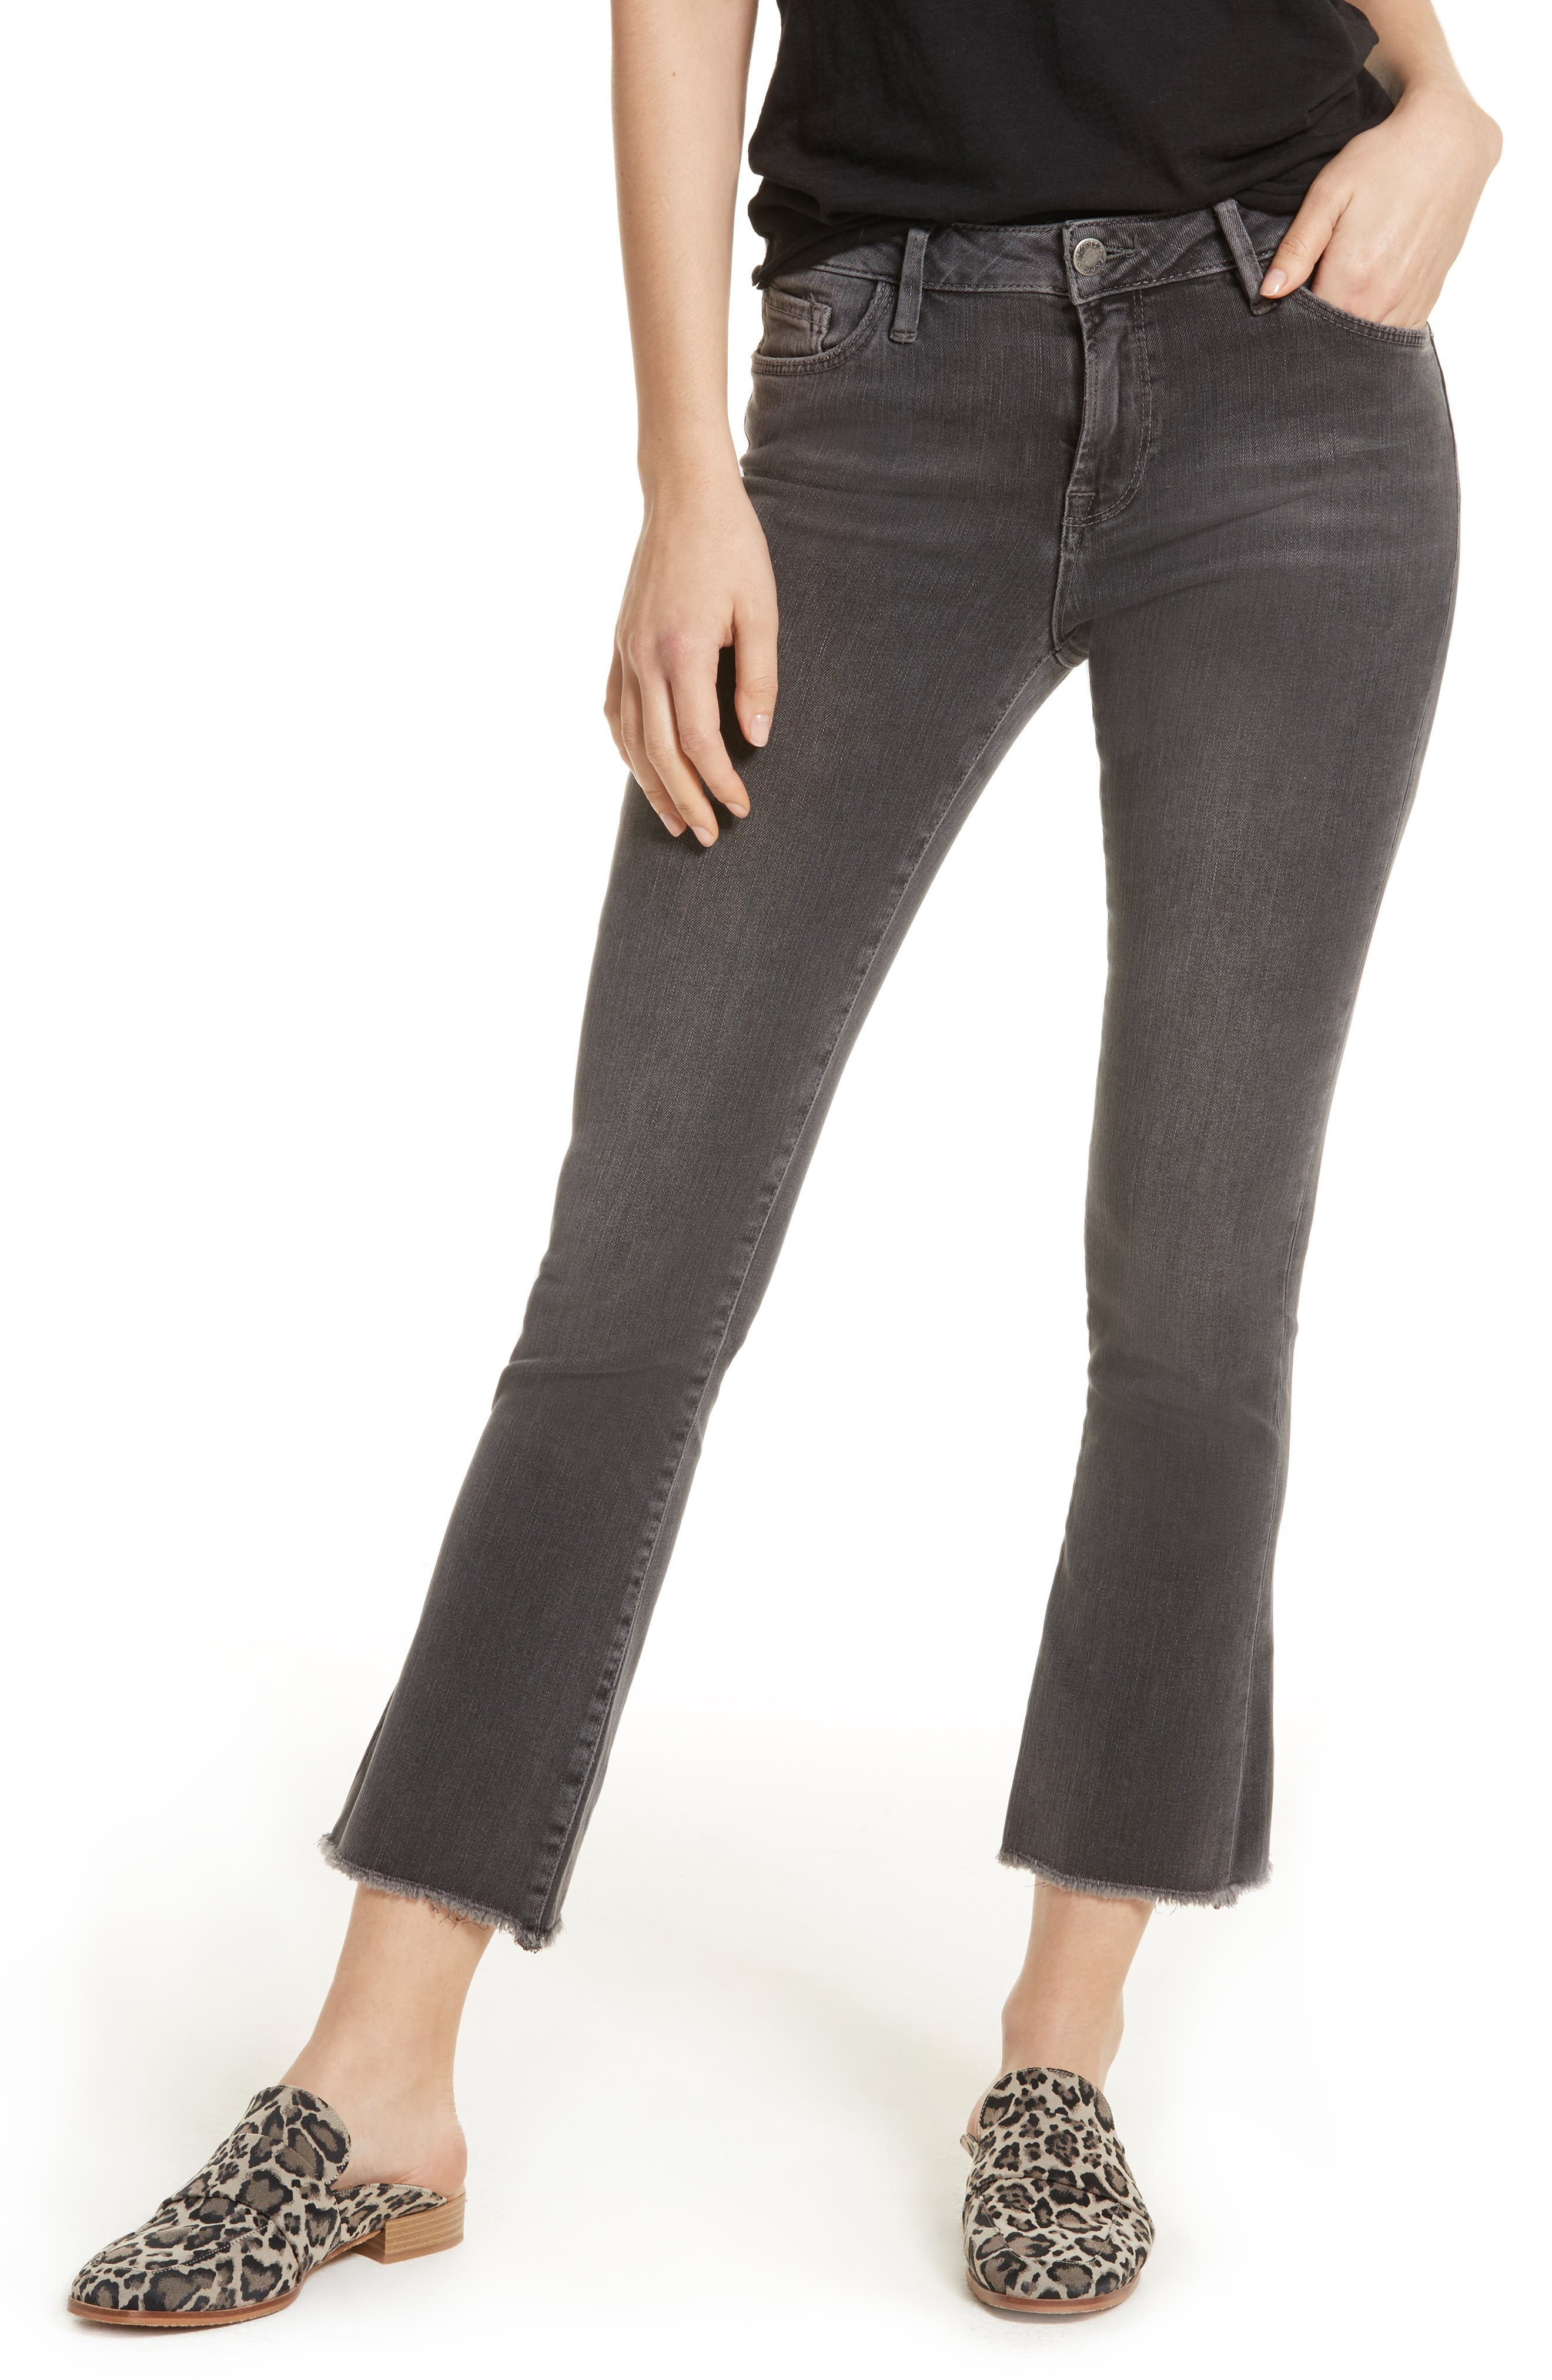 FREE PEOPLE,                             Crop Straight Leg Jeans,                             Main thumbnail 1, color,                             001